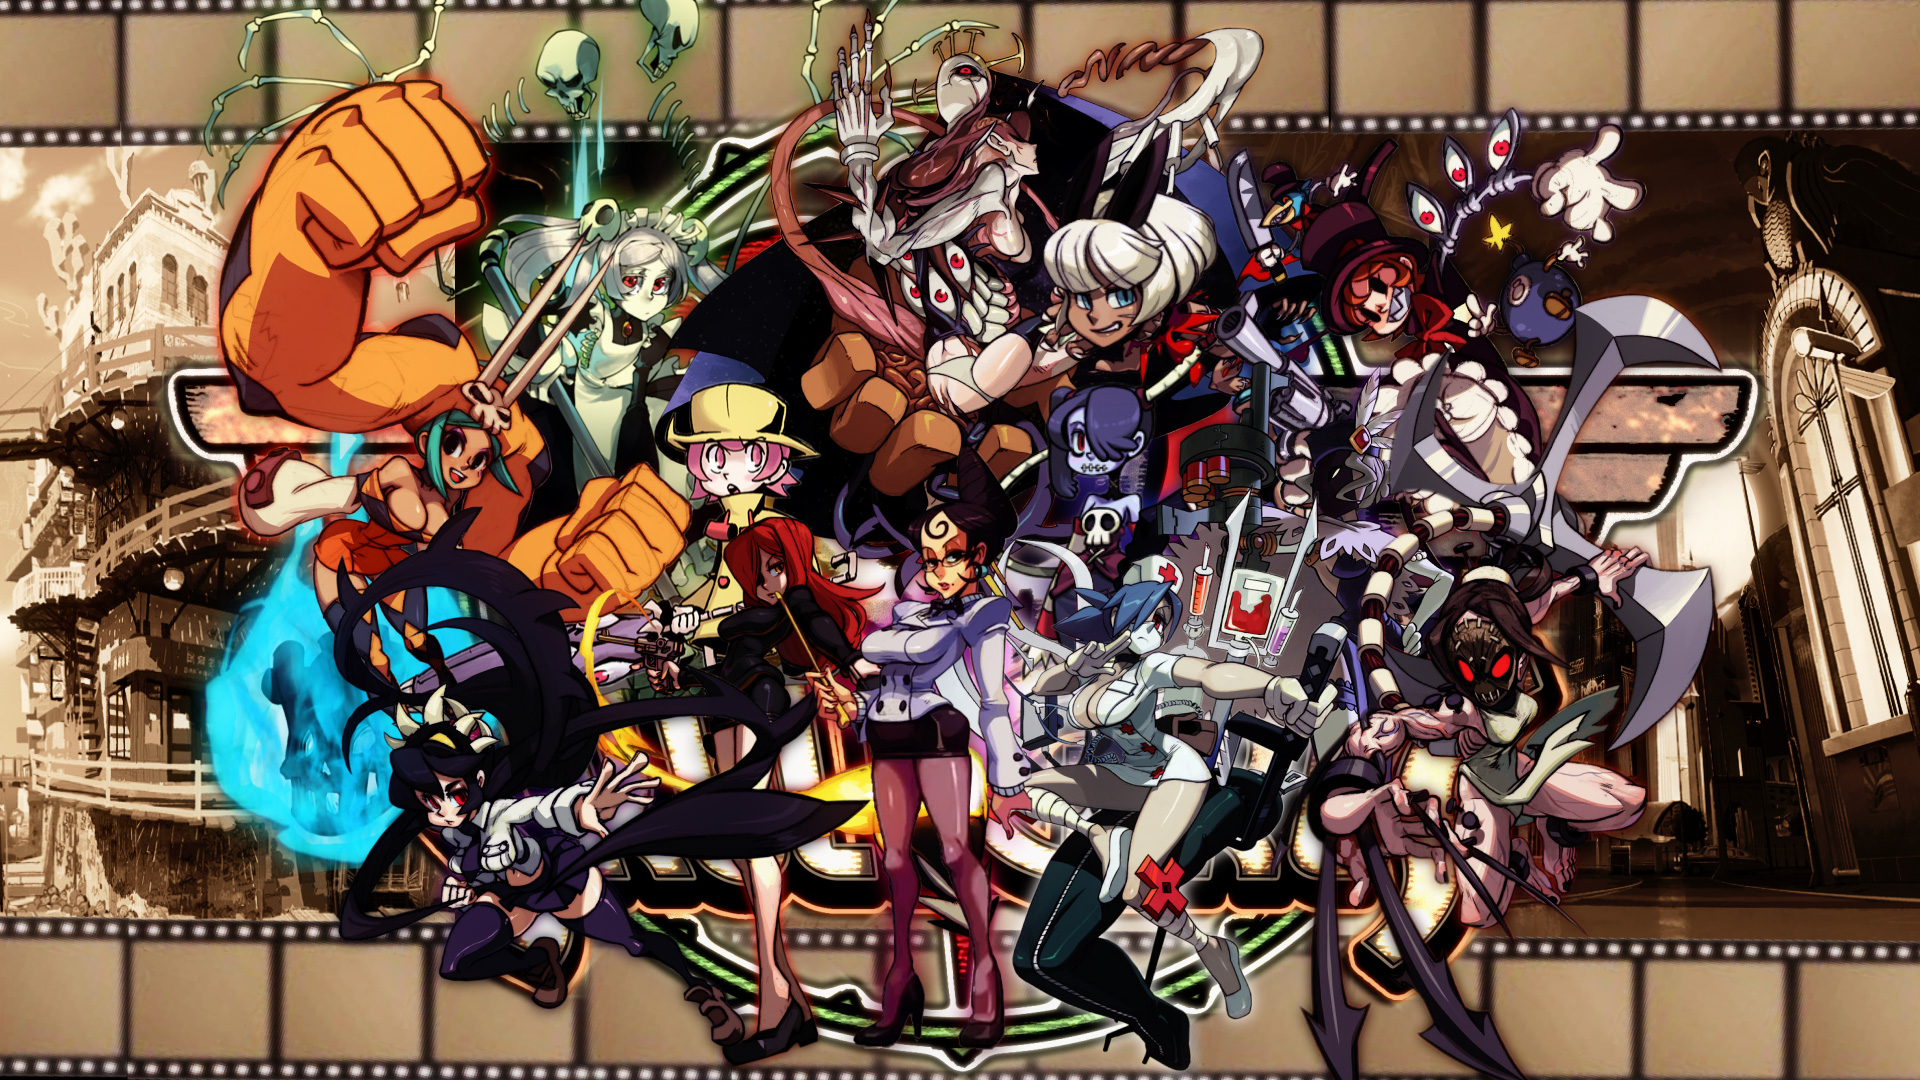 Skullgirls is coming to mobile devices soon screenshot